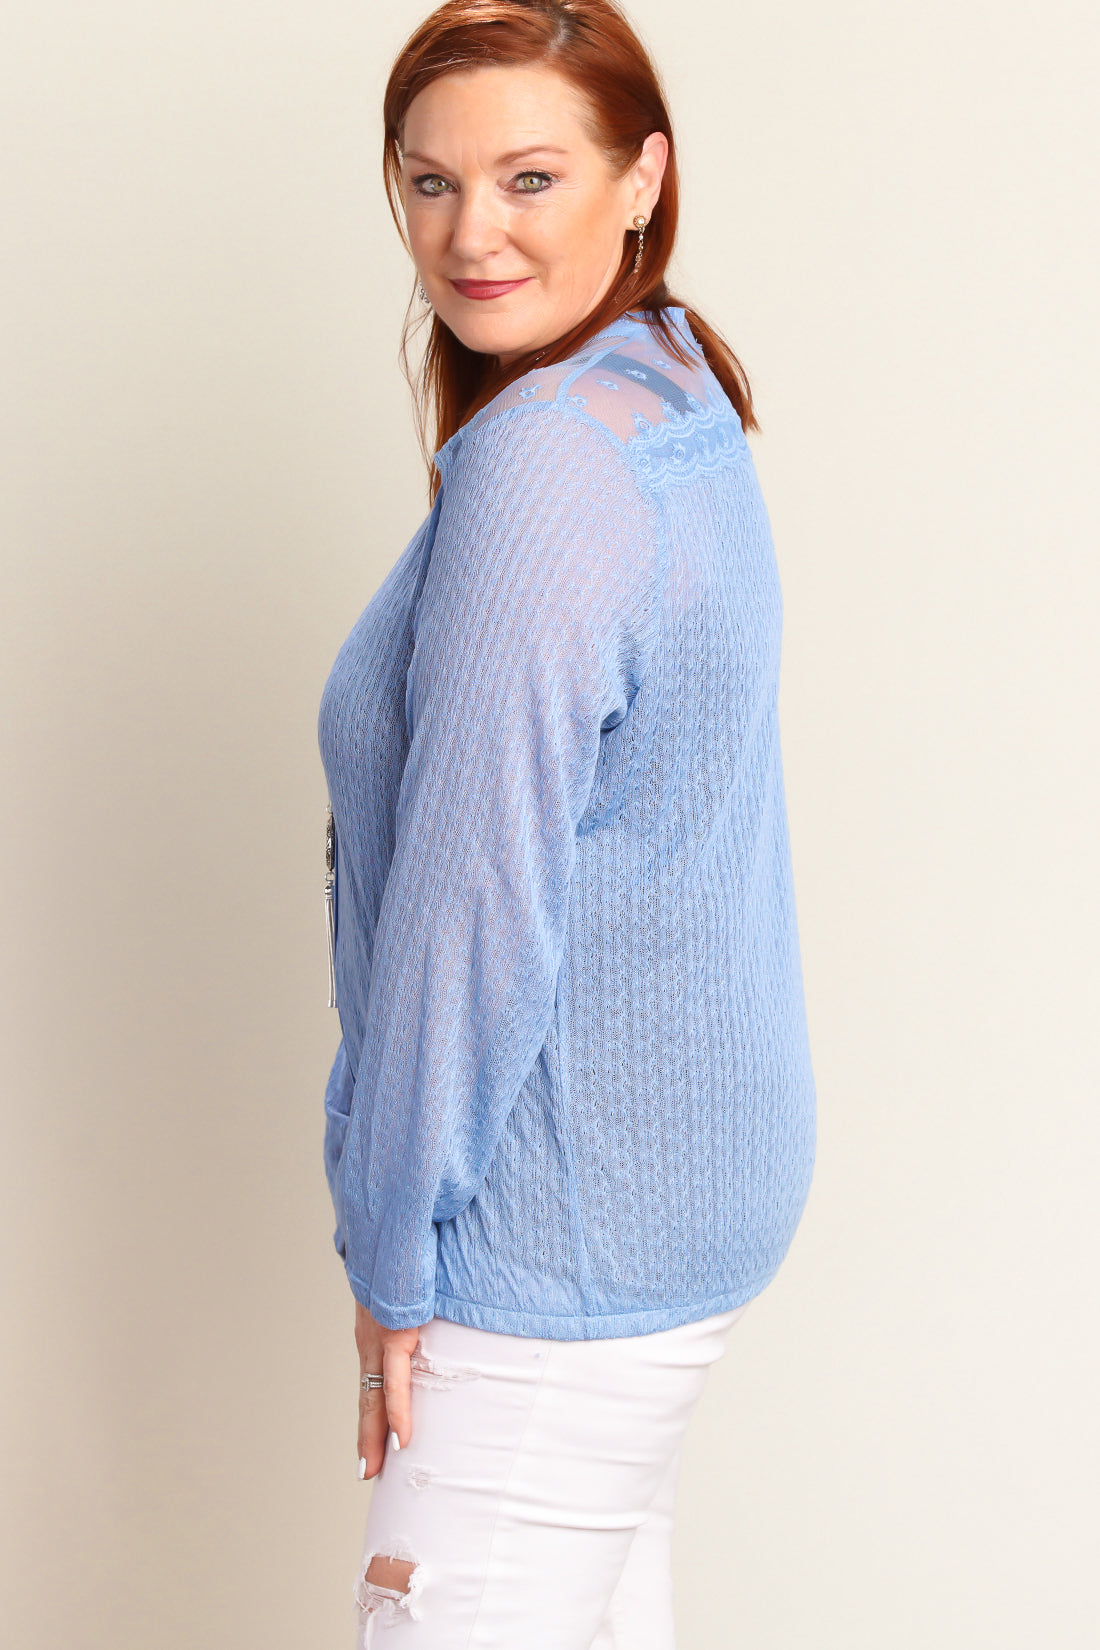 Plus Dusty Blue Button Down Sweater Knit Blouse